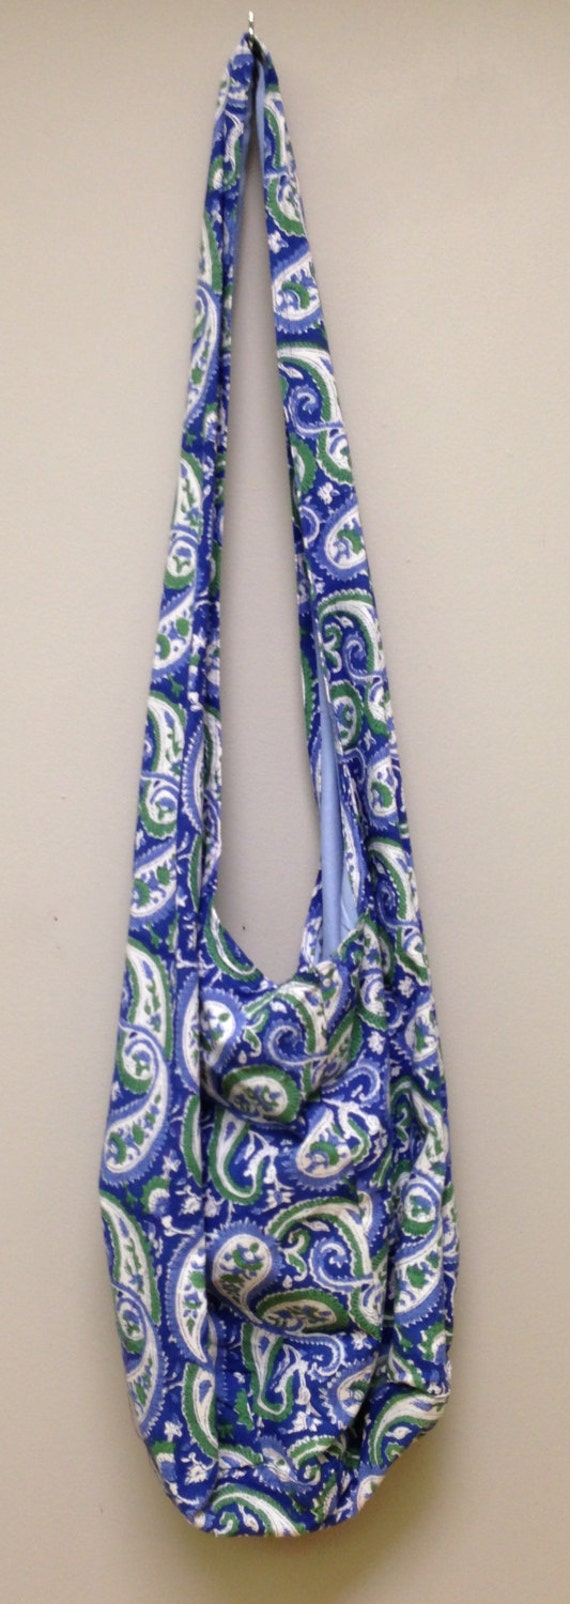 India Bag Blue Paisley Shoulder Bag Handmade Cotton Hand Sewn Colorful Hand Stamped Fabric Gift for Her India Fun Shoulder Bag